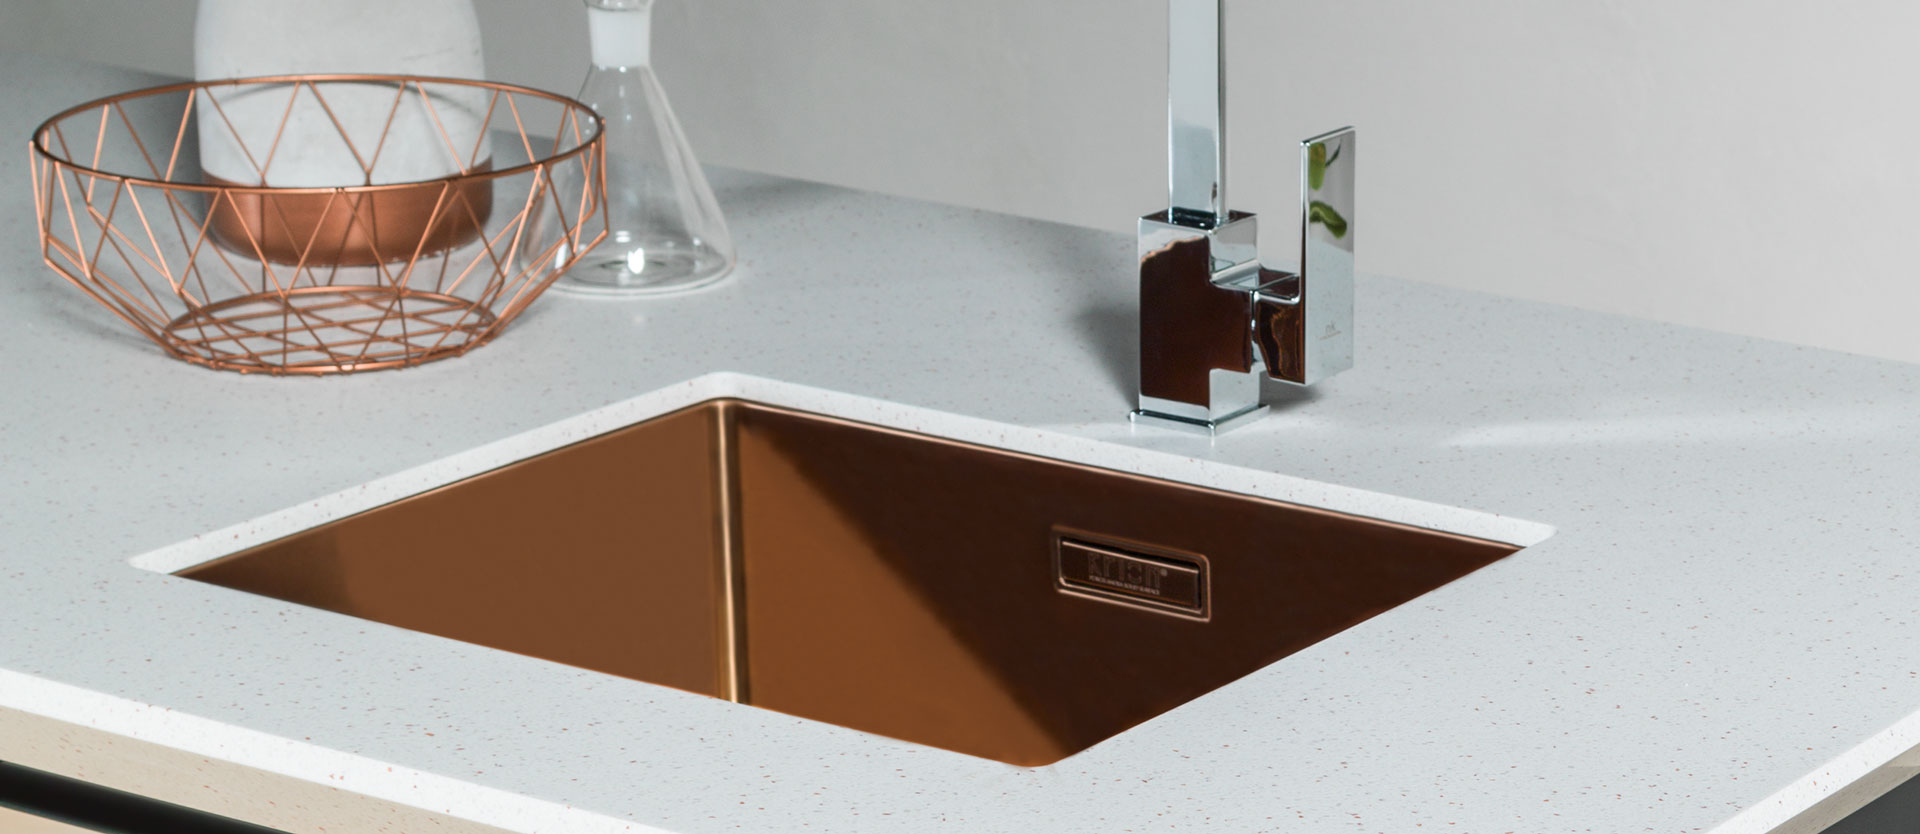 solid-surface-kitchen-sinks-solid-surface-krion-solid-surface-kitchen-sink-l-ead9abd8411050f9.jpg